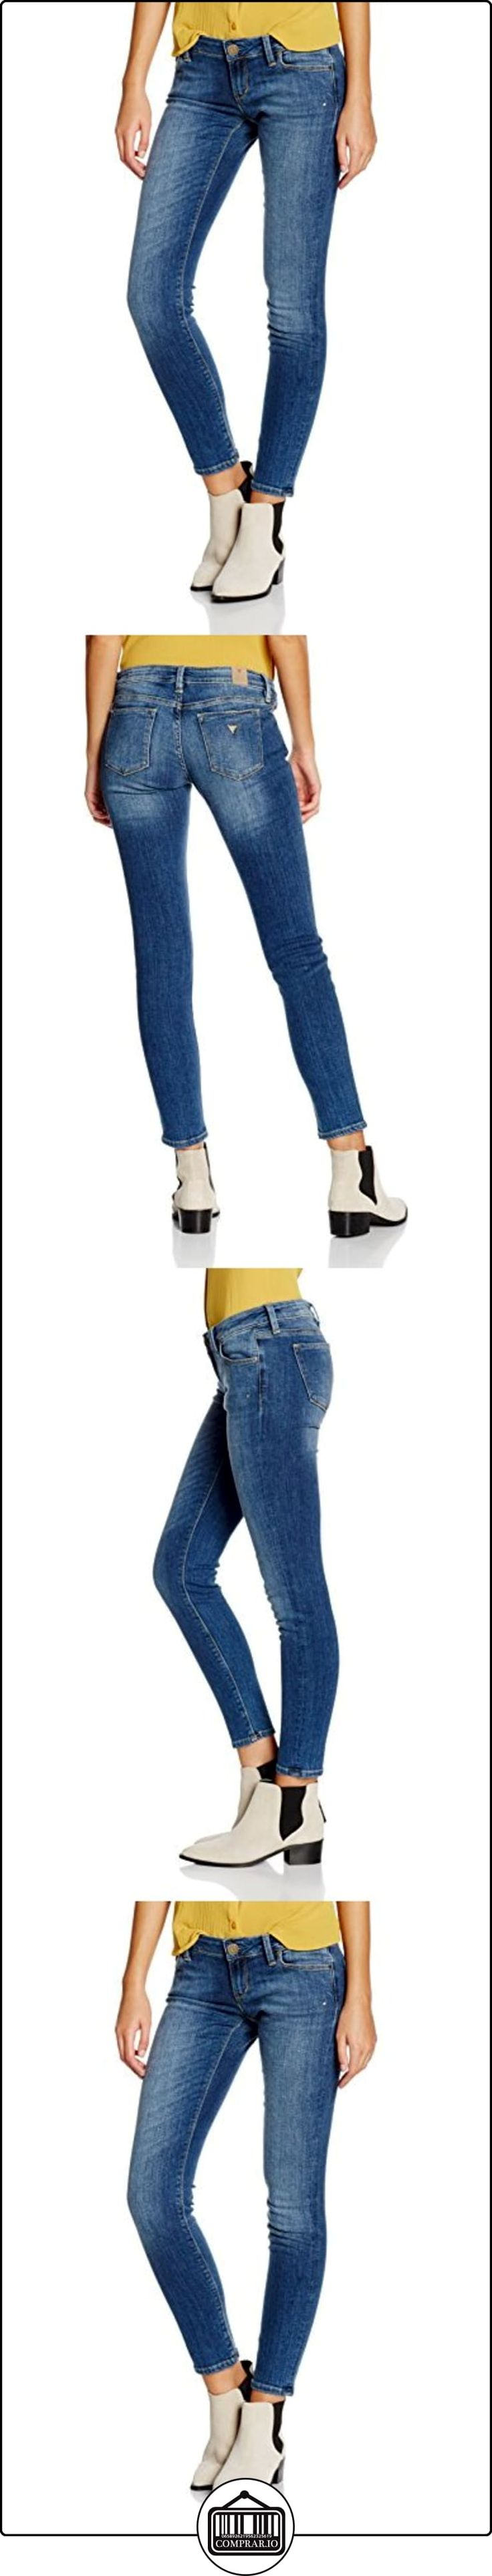 GUESS Skinny Ultra Low (NO Zip) -W62043D24J1, Jeans para Mujer, Azul (Itin Itinerary), 28  ✿ Vaqueros ✿